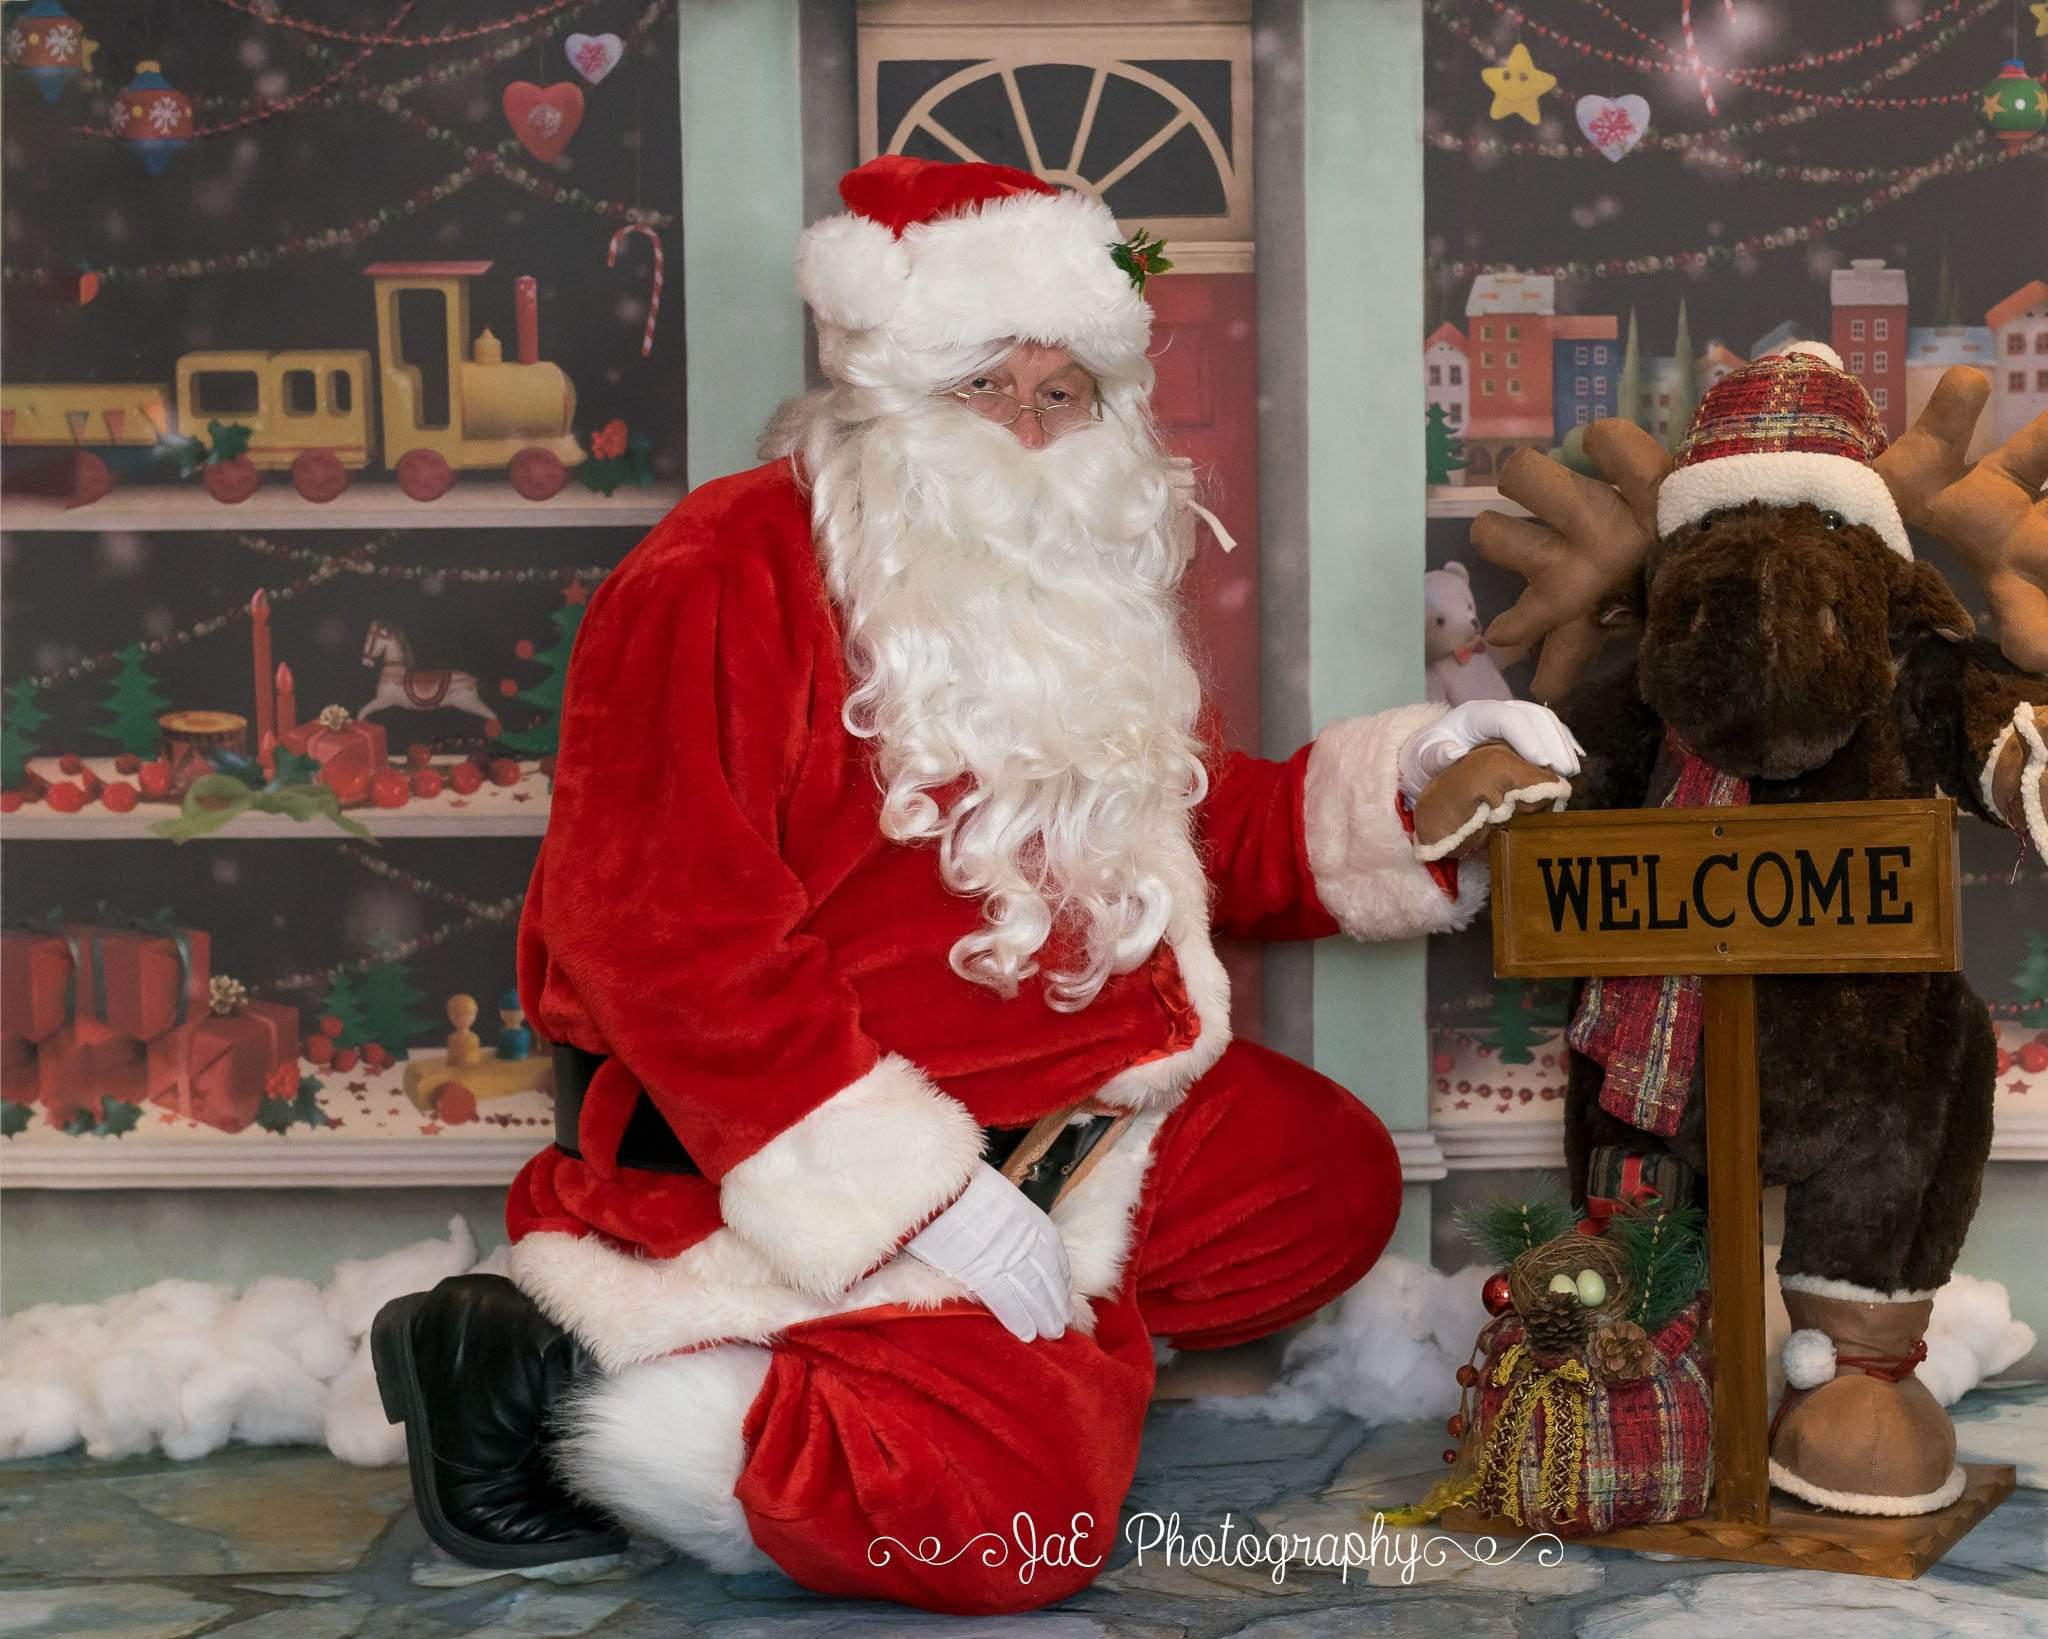 Load image into Gallery viewer, Kate Christmas Santa Workshop Photography Backdrop Children Photo Background